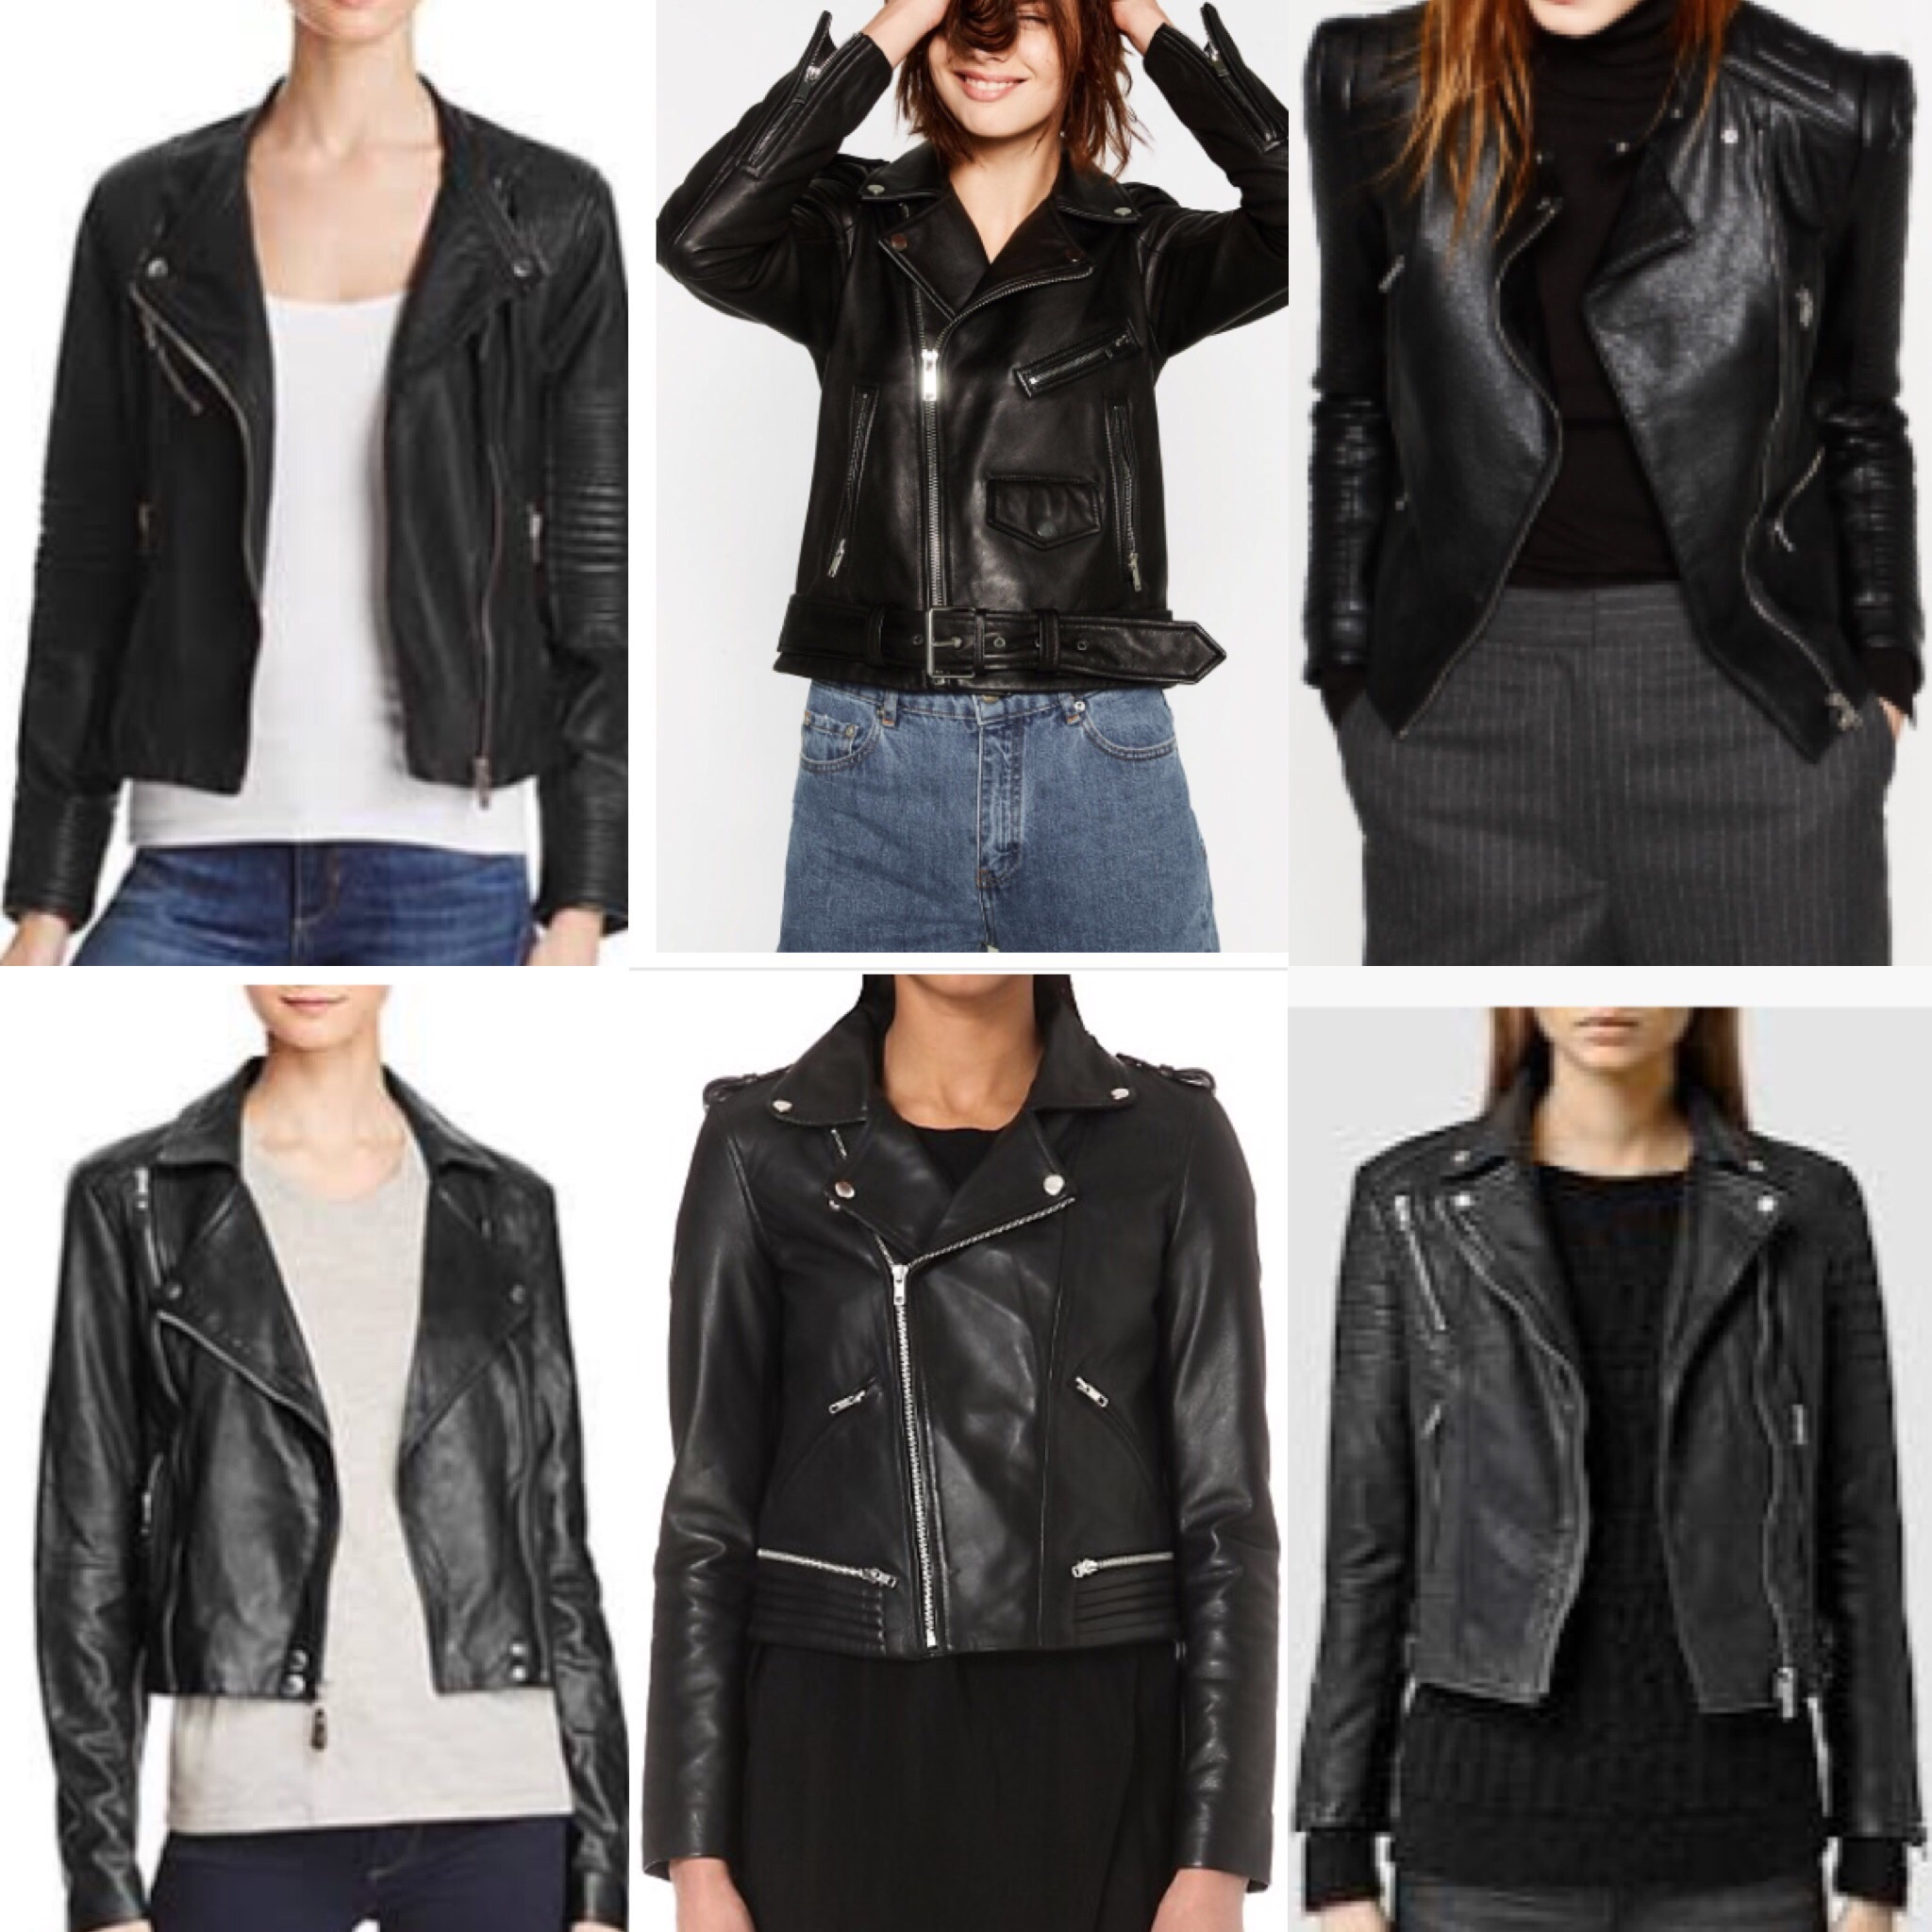 The Perfect Fall Jacket...Black Leather